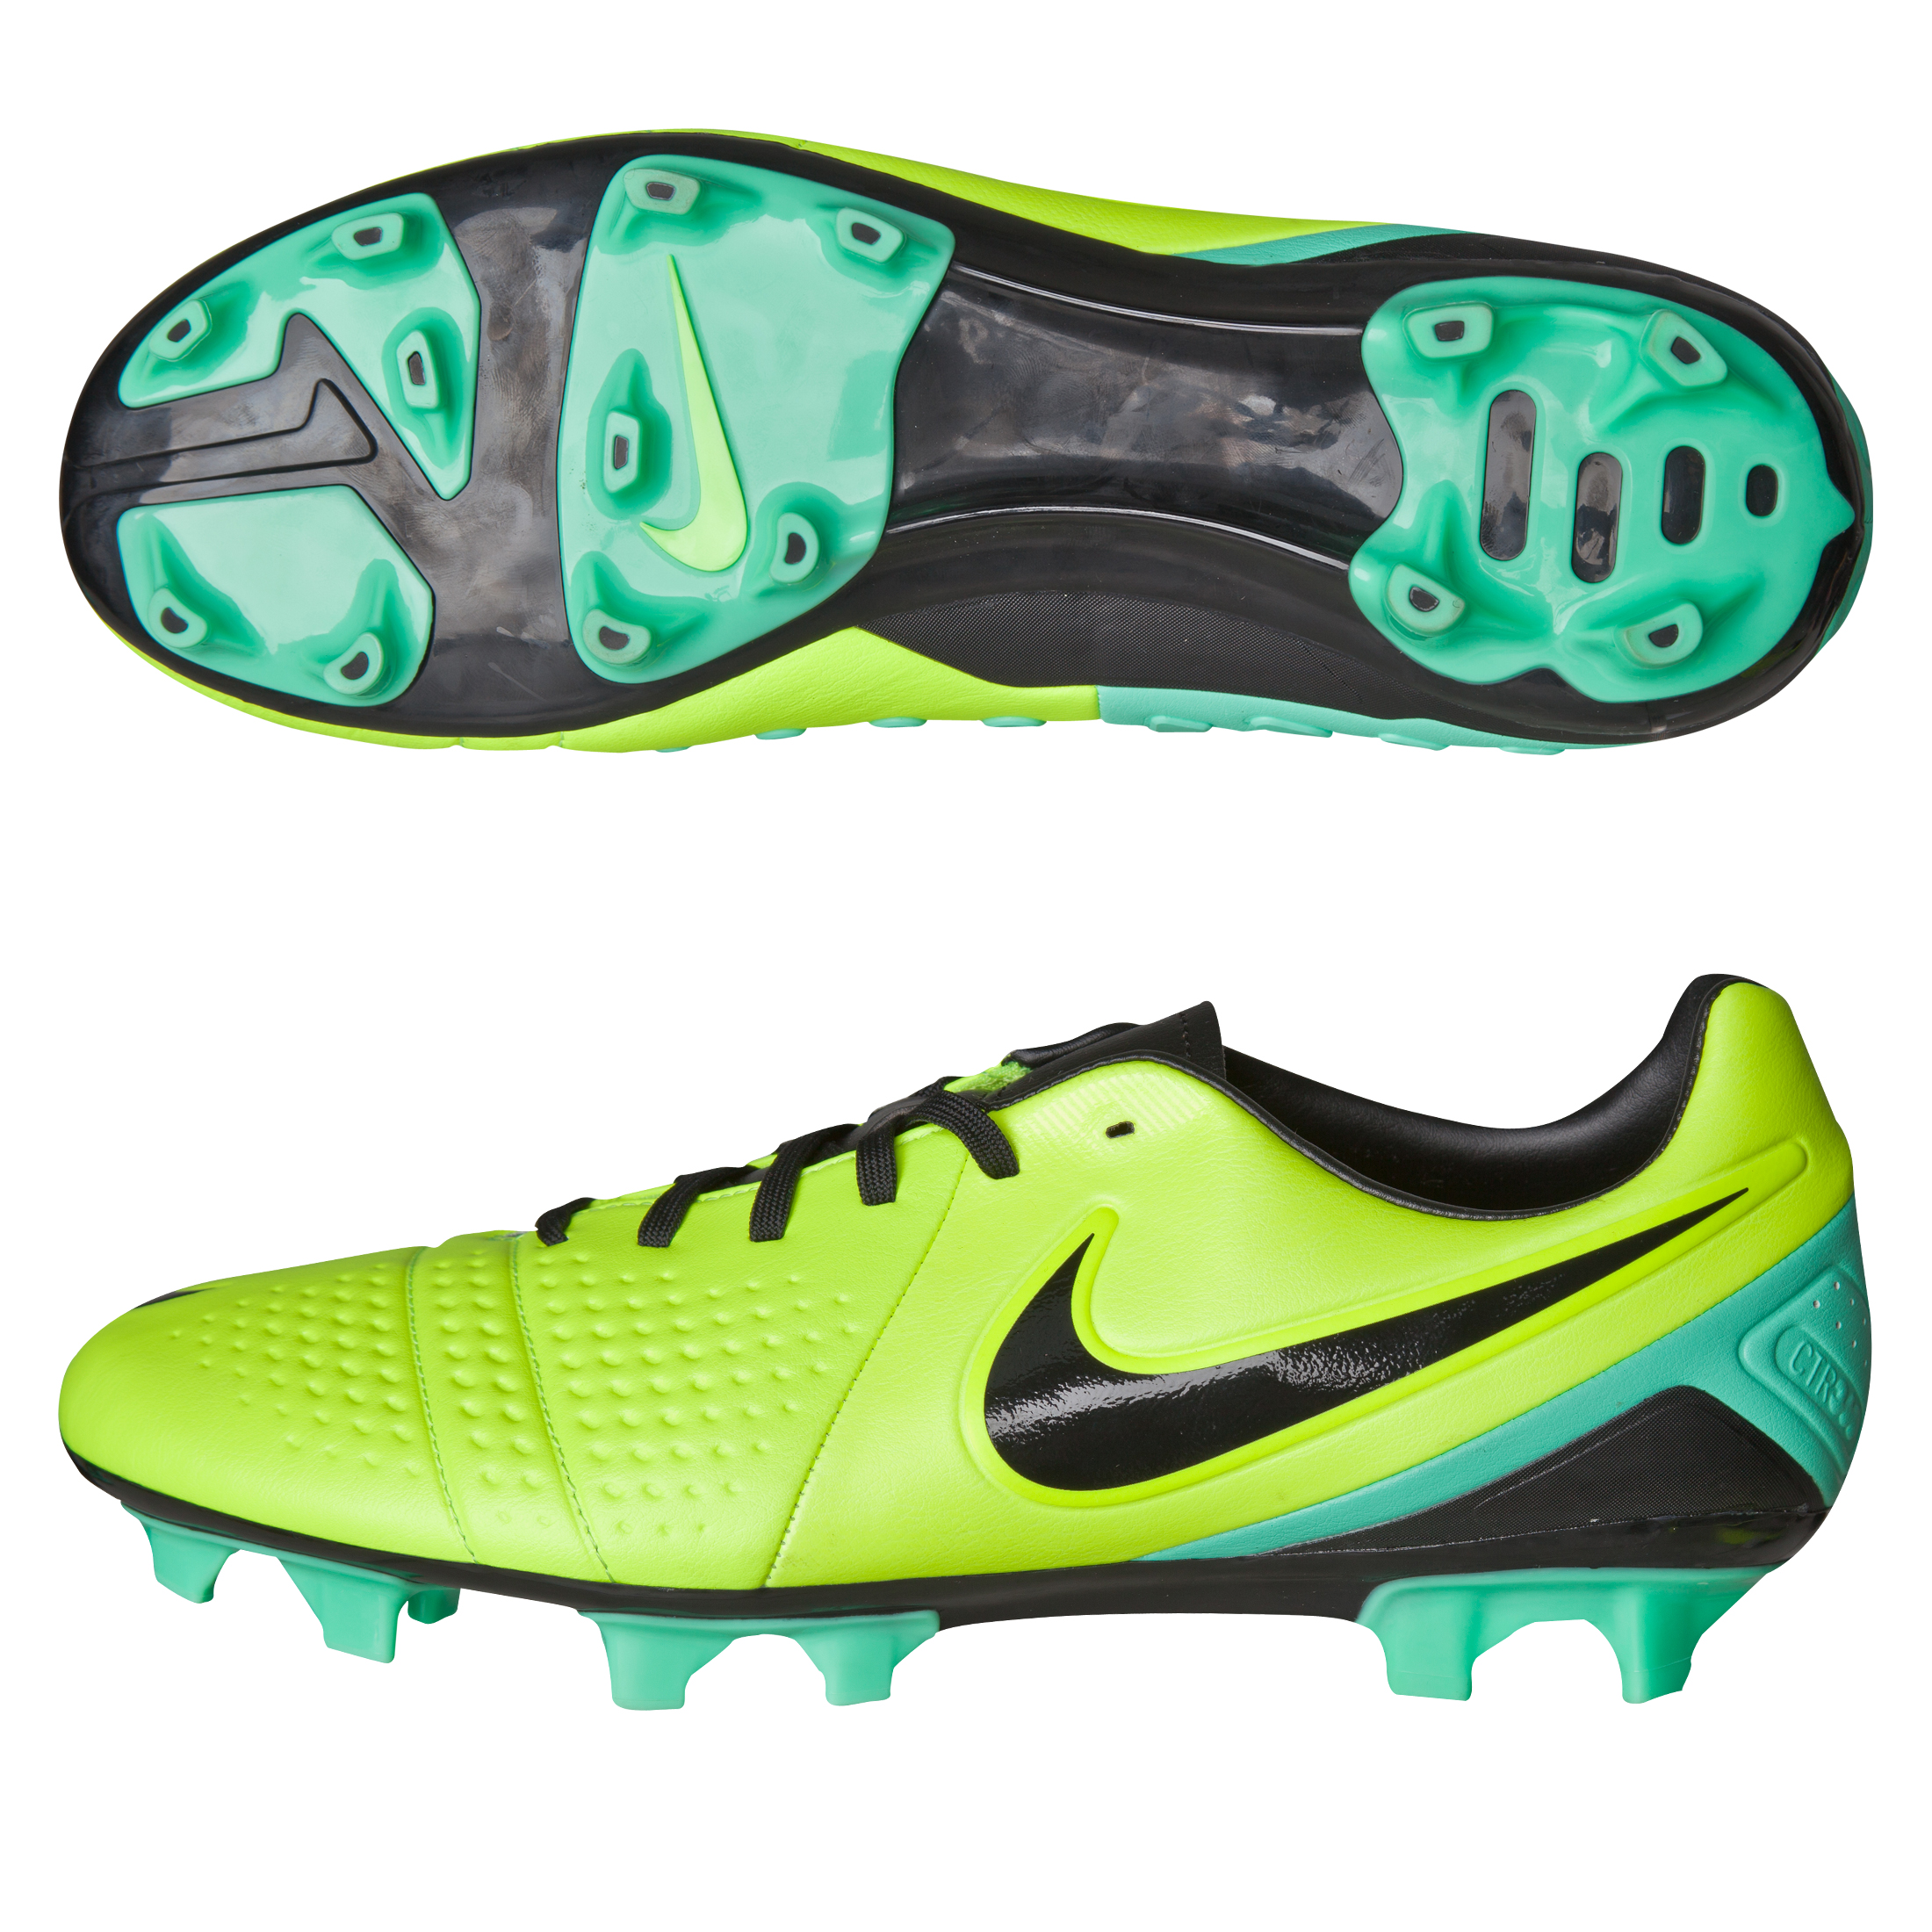 Nike CTR360 Trequartista III Firm Ground Football Boots Yellow